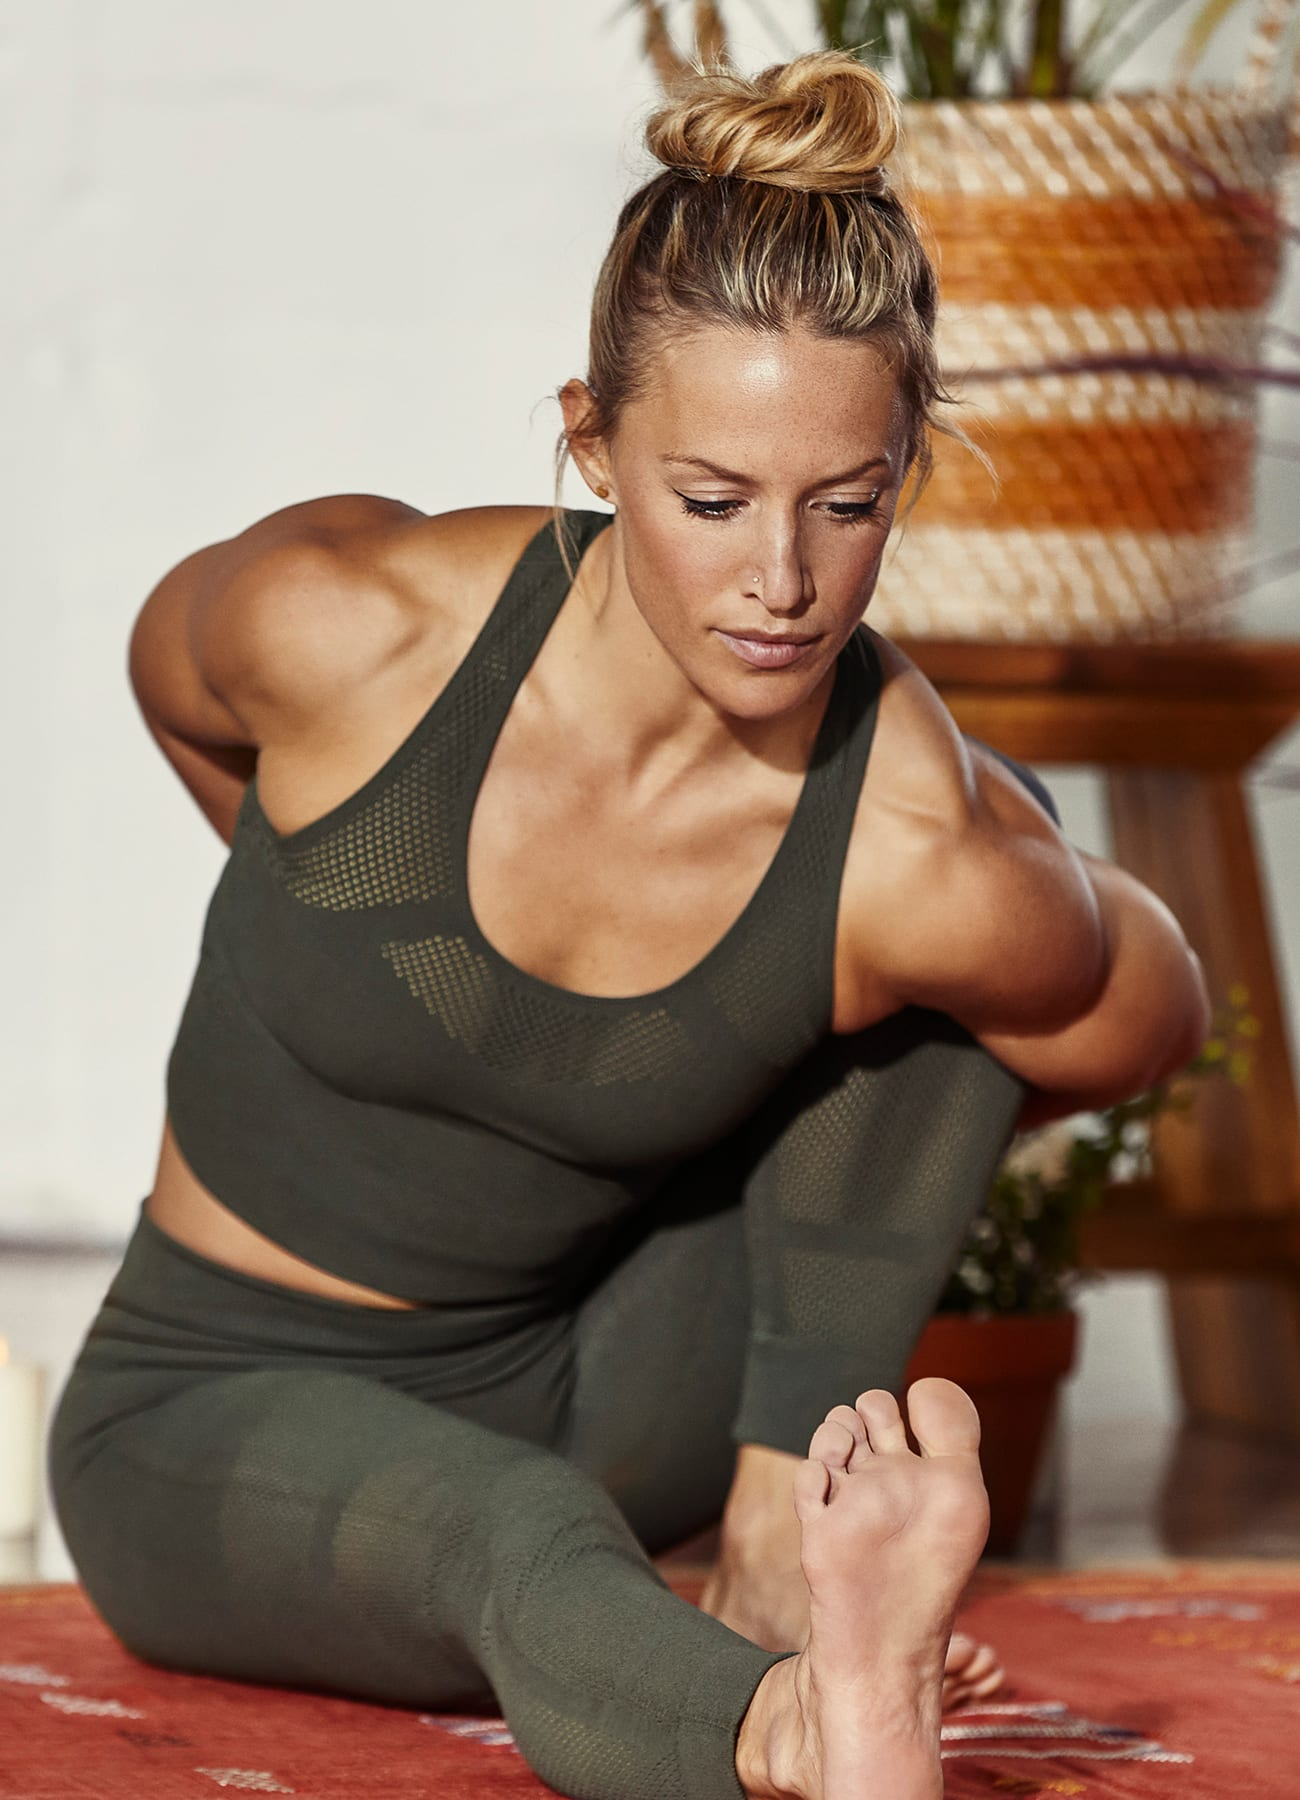 training-fw19-bras-and-tights-story-page-image-portrait-dec